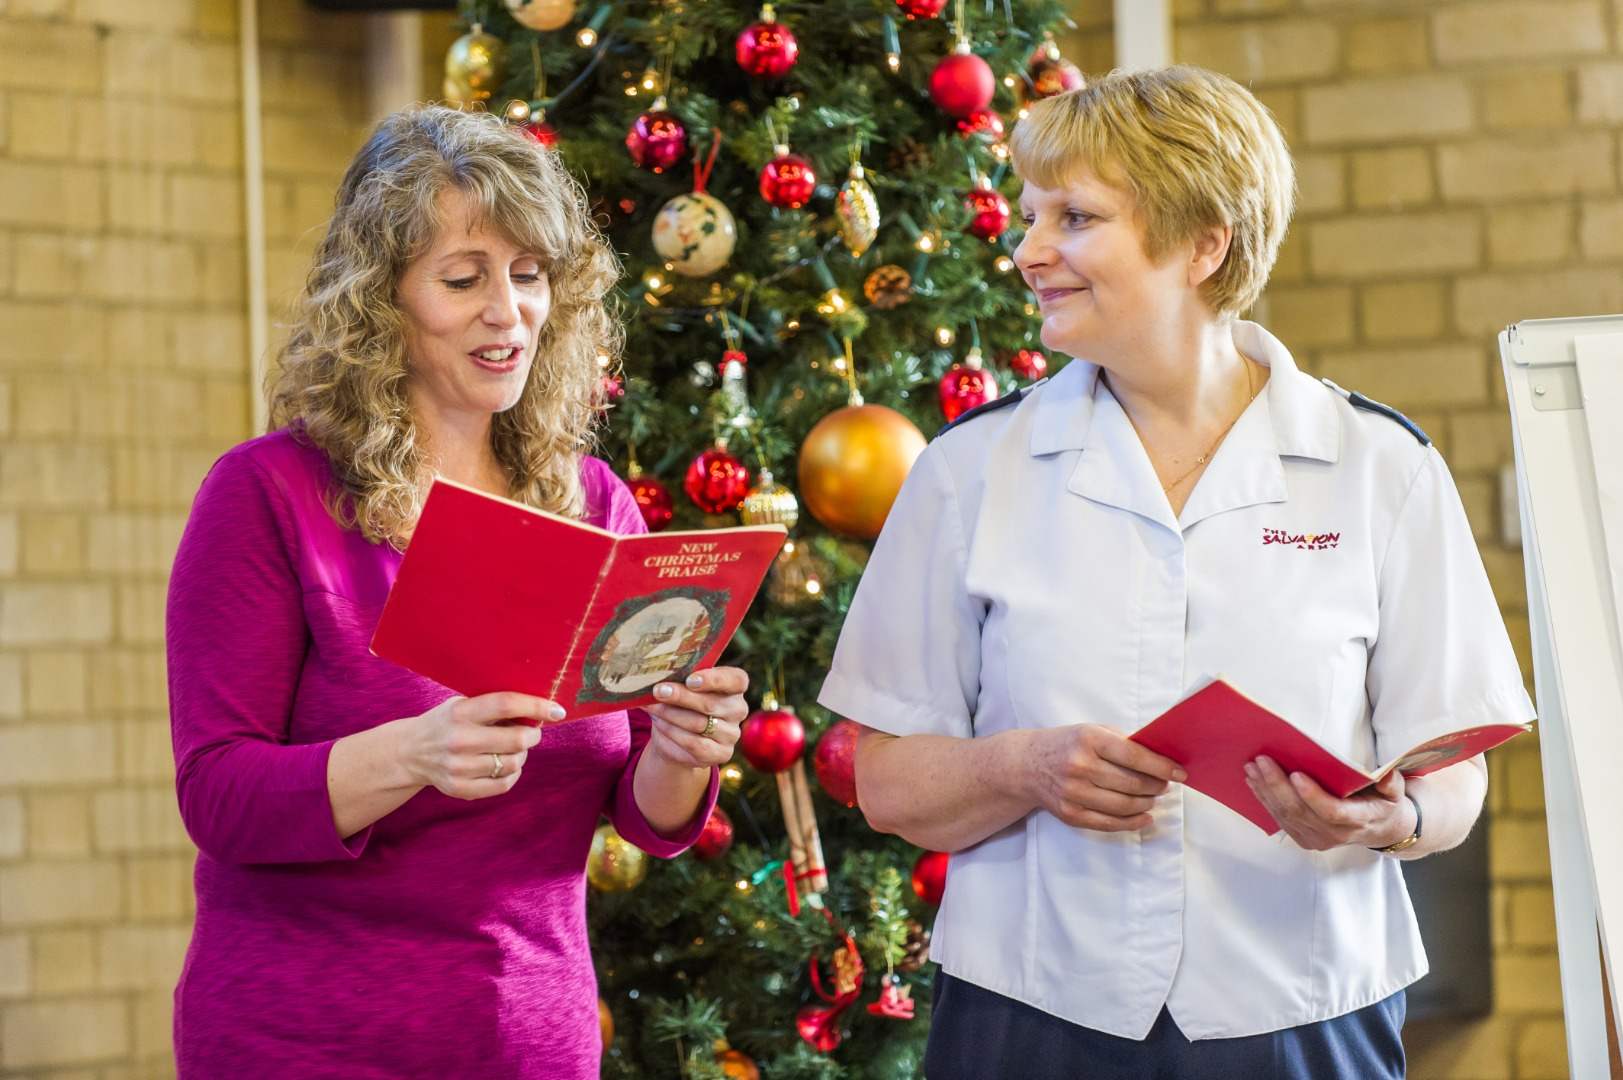 Dementia sufferers to remember Christmas through the power of song